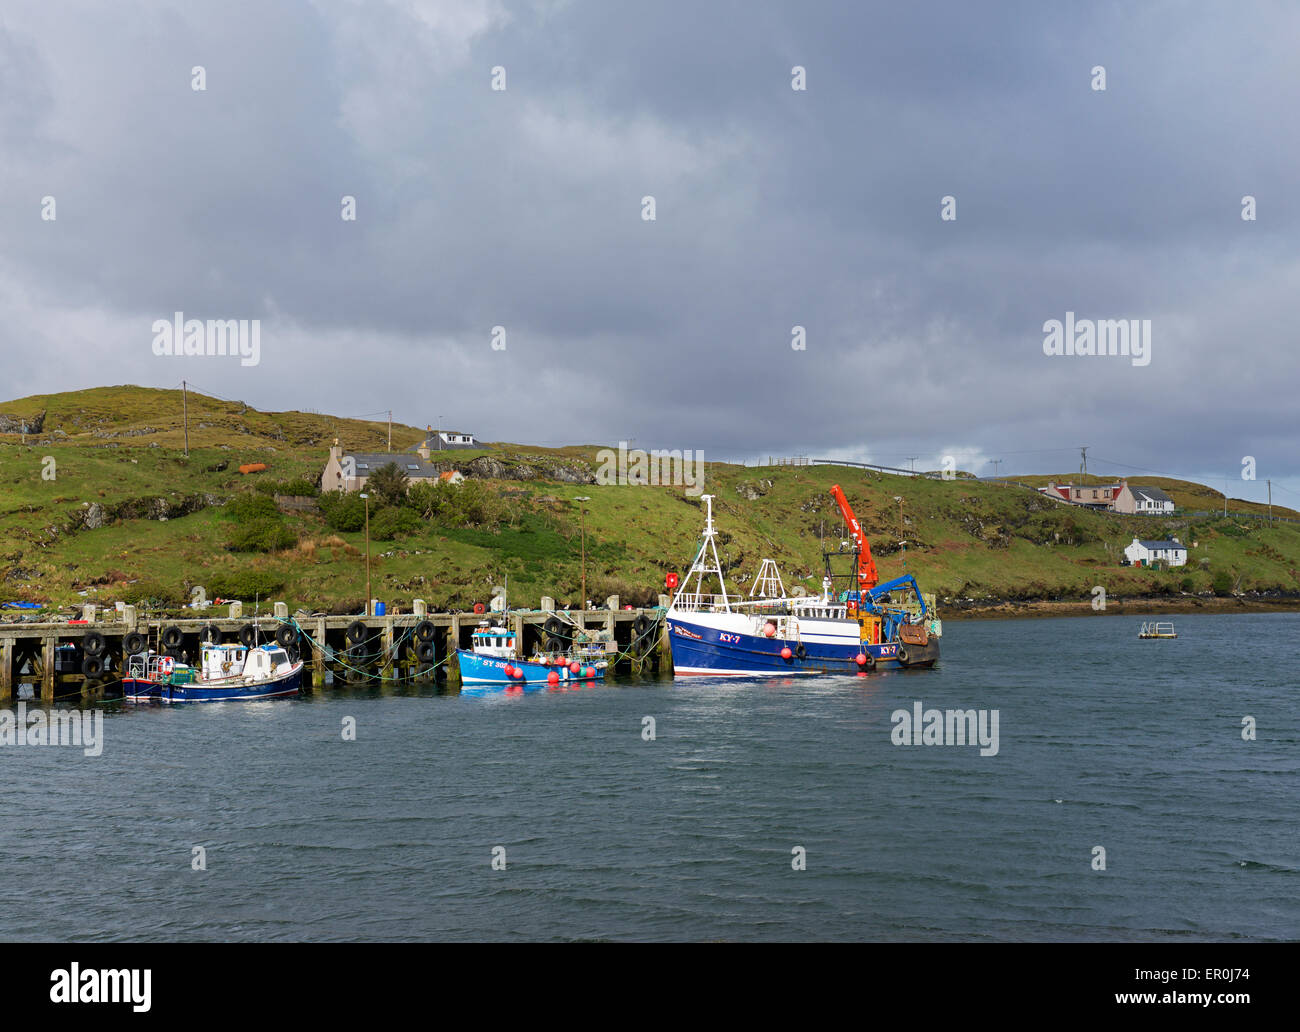 Boats at the pier on the island of Scalpay, Harris, Outer Hebrides, Scotland UK - Stock Image